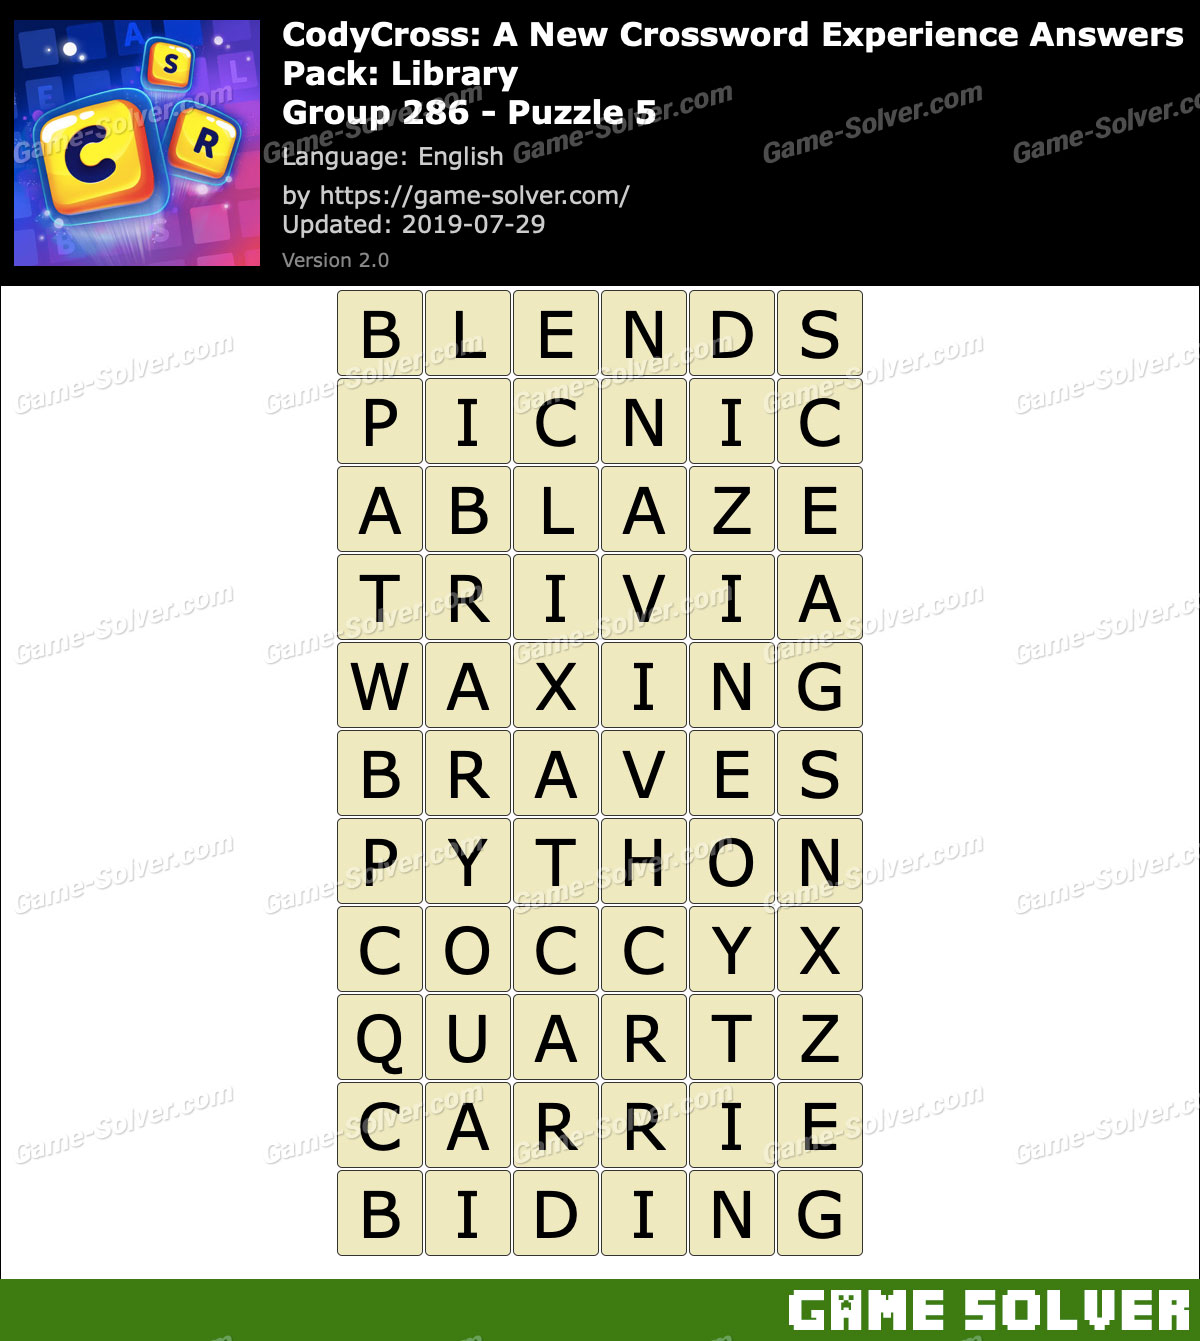 CodyCross Library Group 286-Puzzle 5 Answers - Game Solver